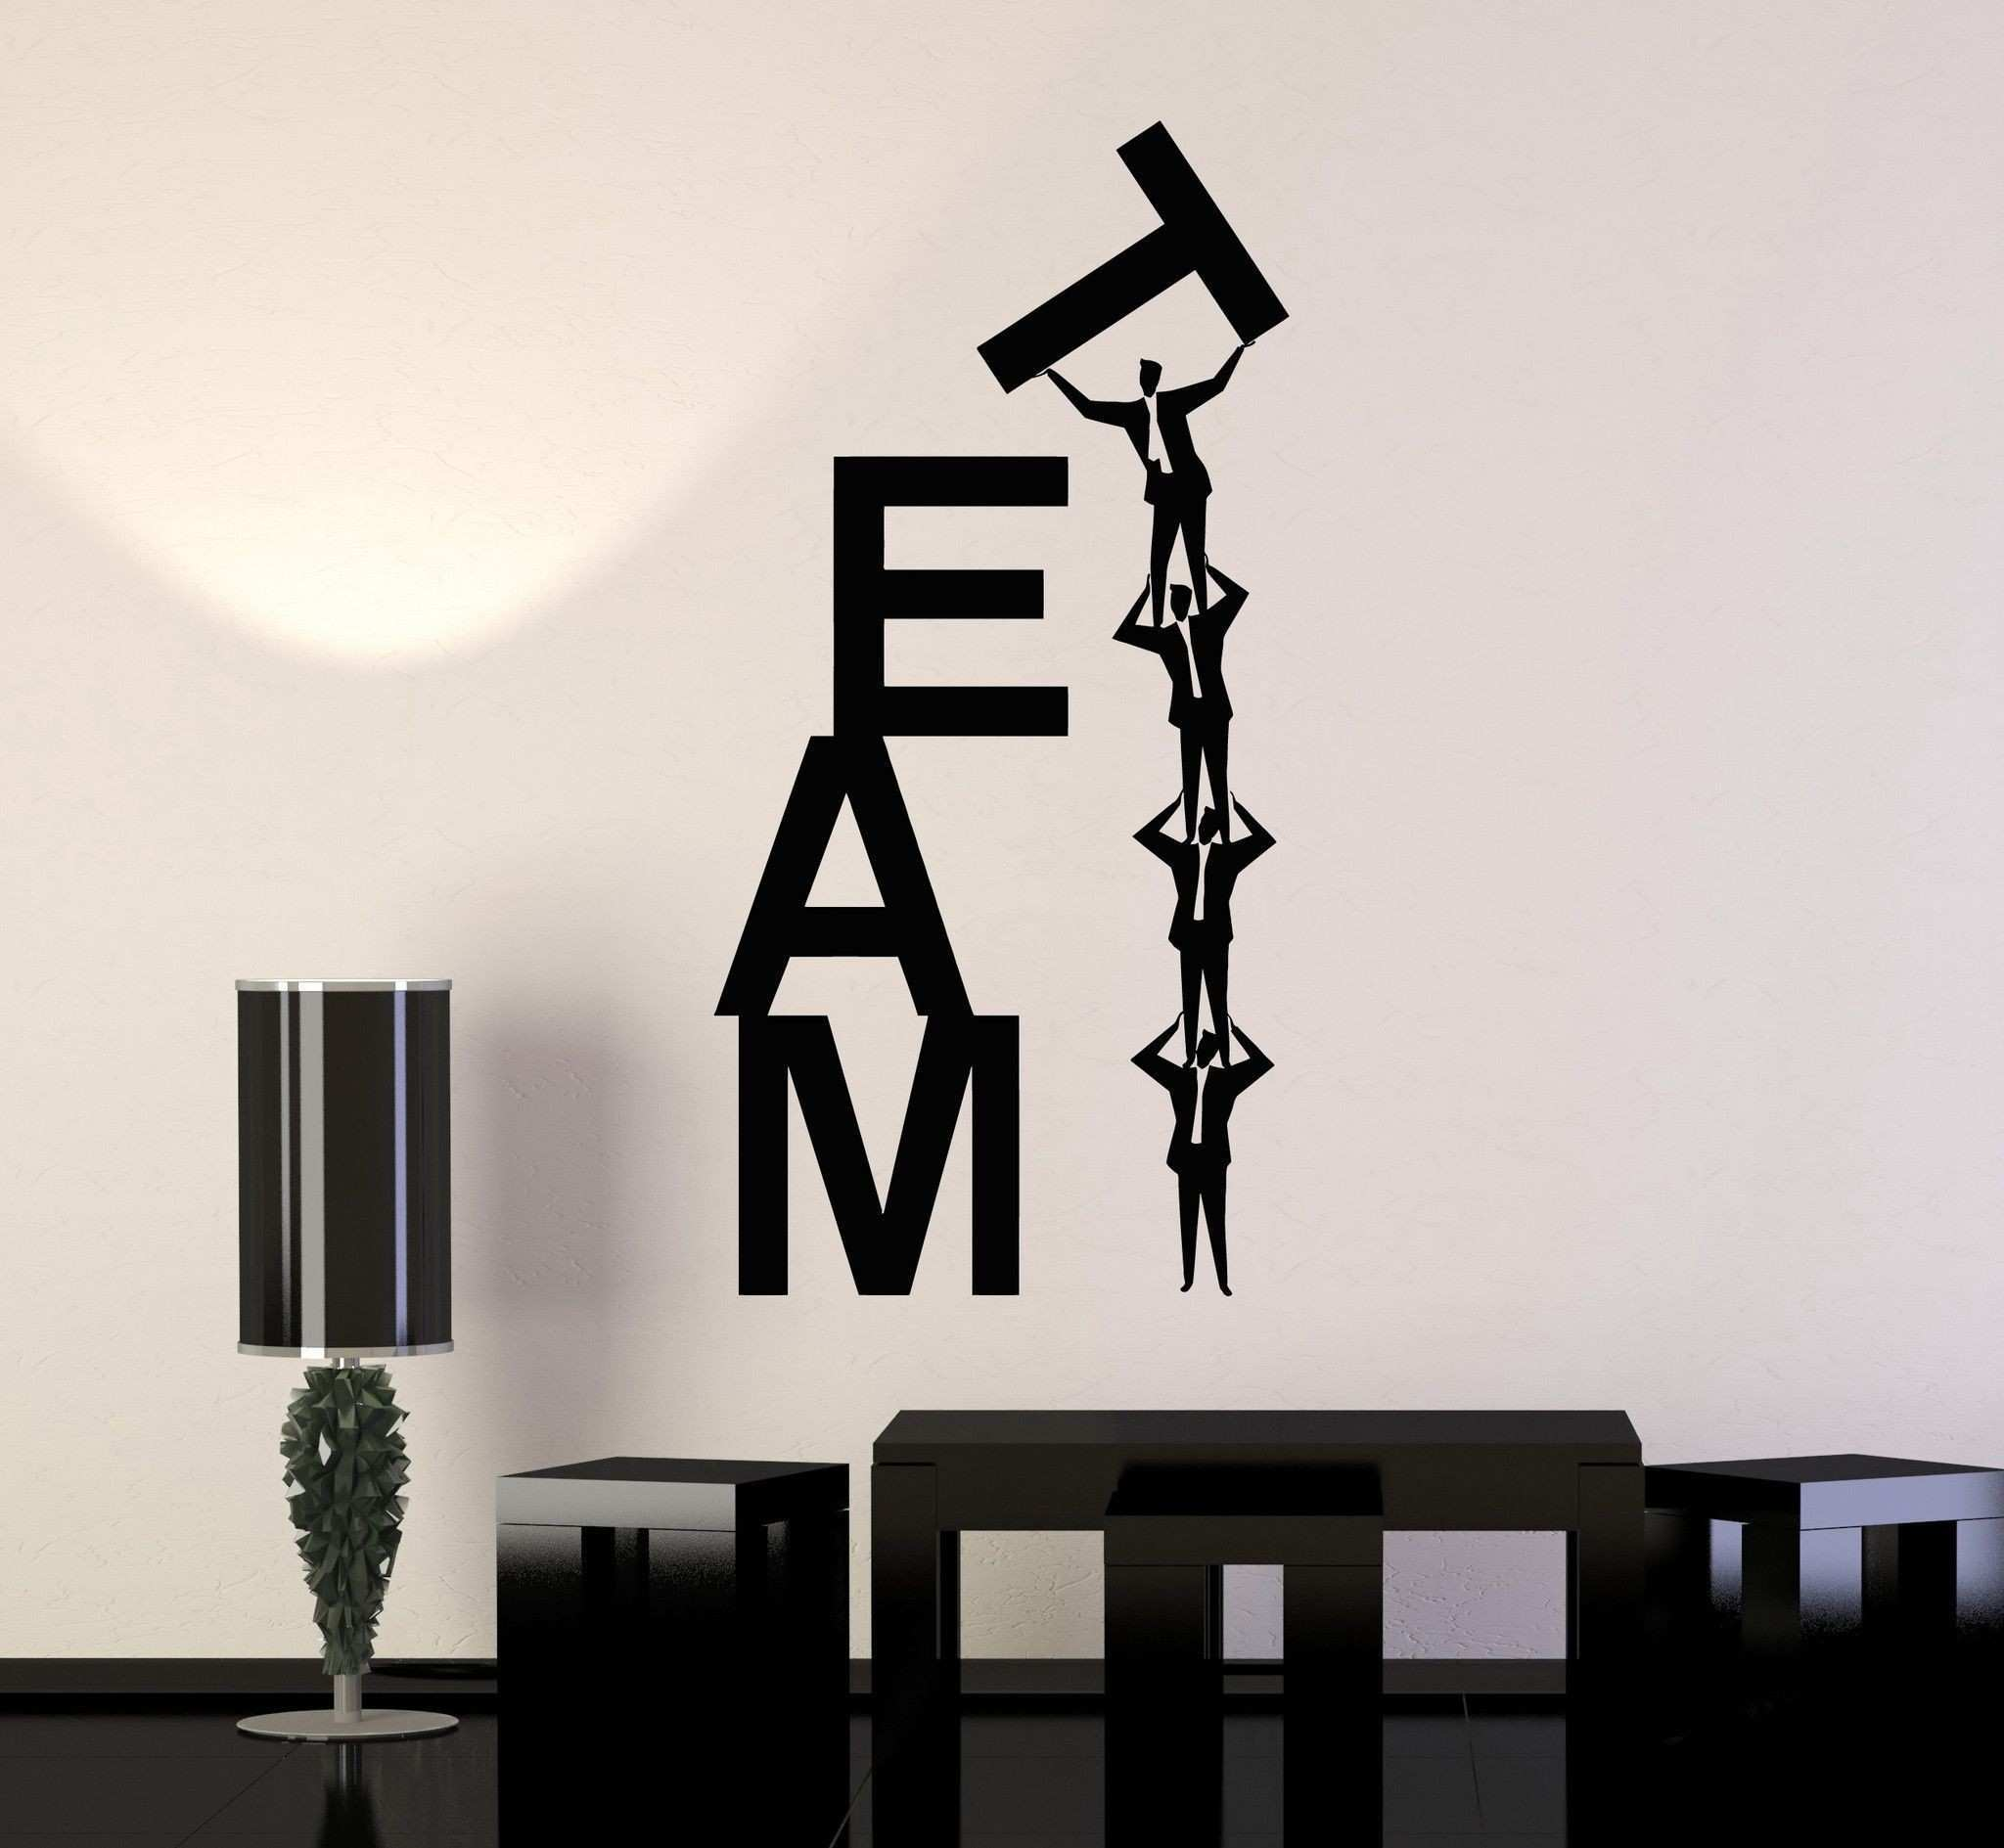 Office Pictures for Walls Beautiful Vinyl Wall Decal Team Work Teamwork Fice Business Word Stickers